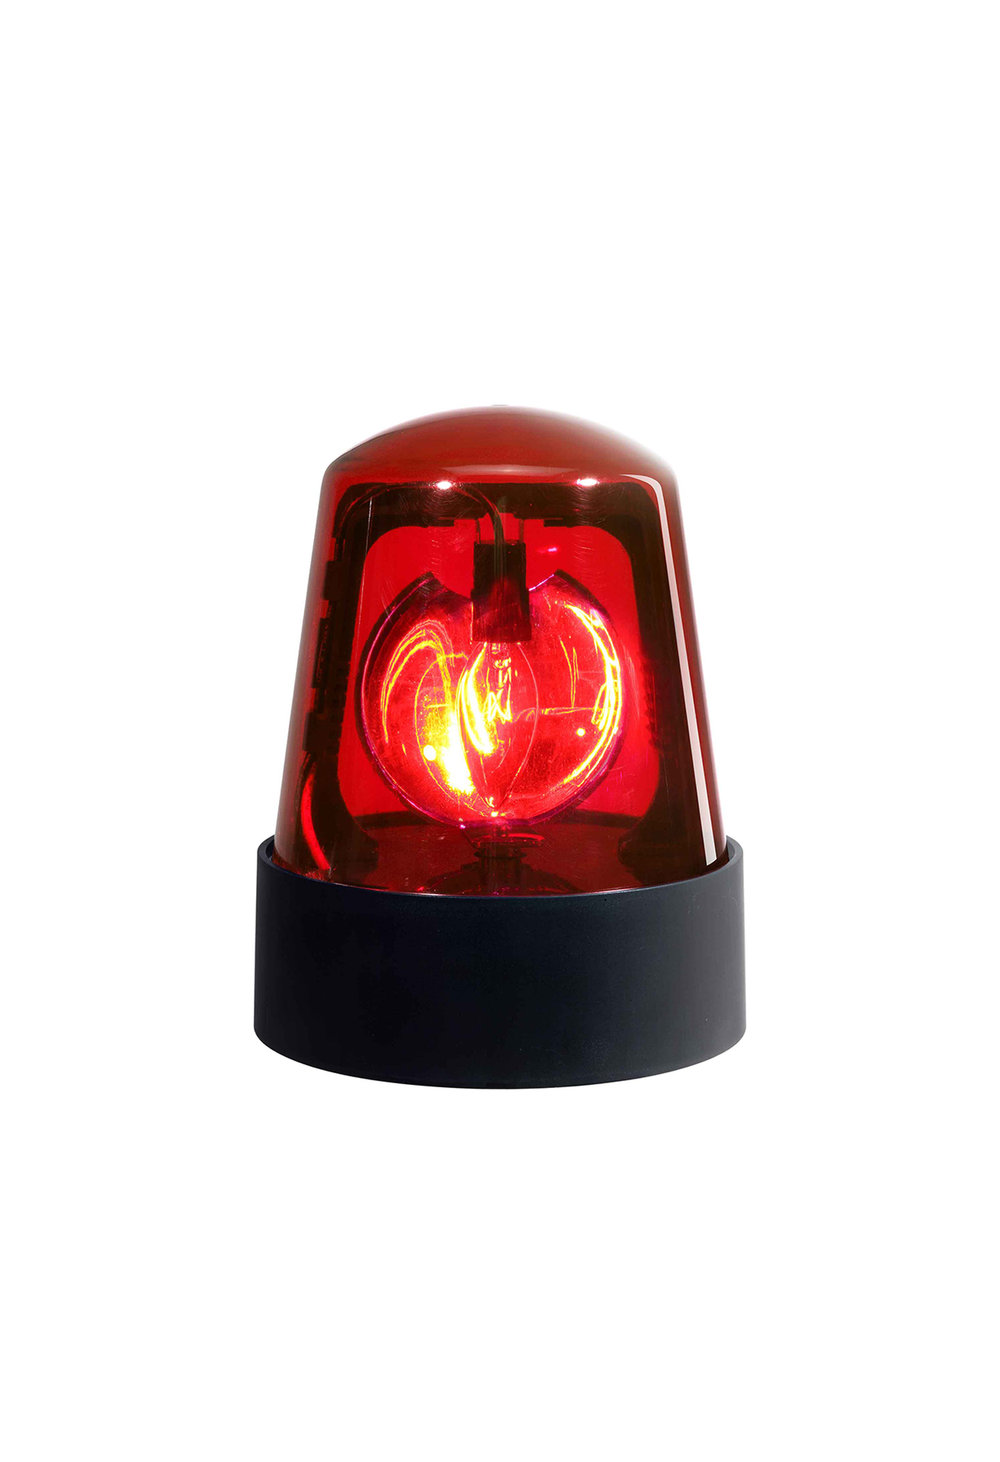 "PL-1R 7"" POLICE BEACON - Red Dome"